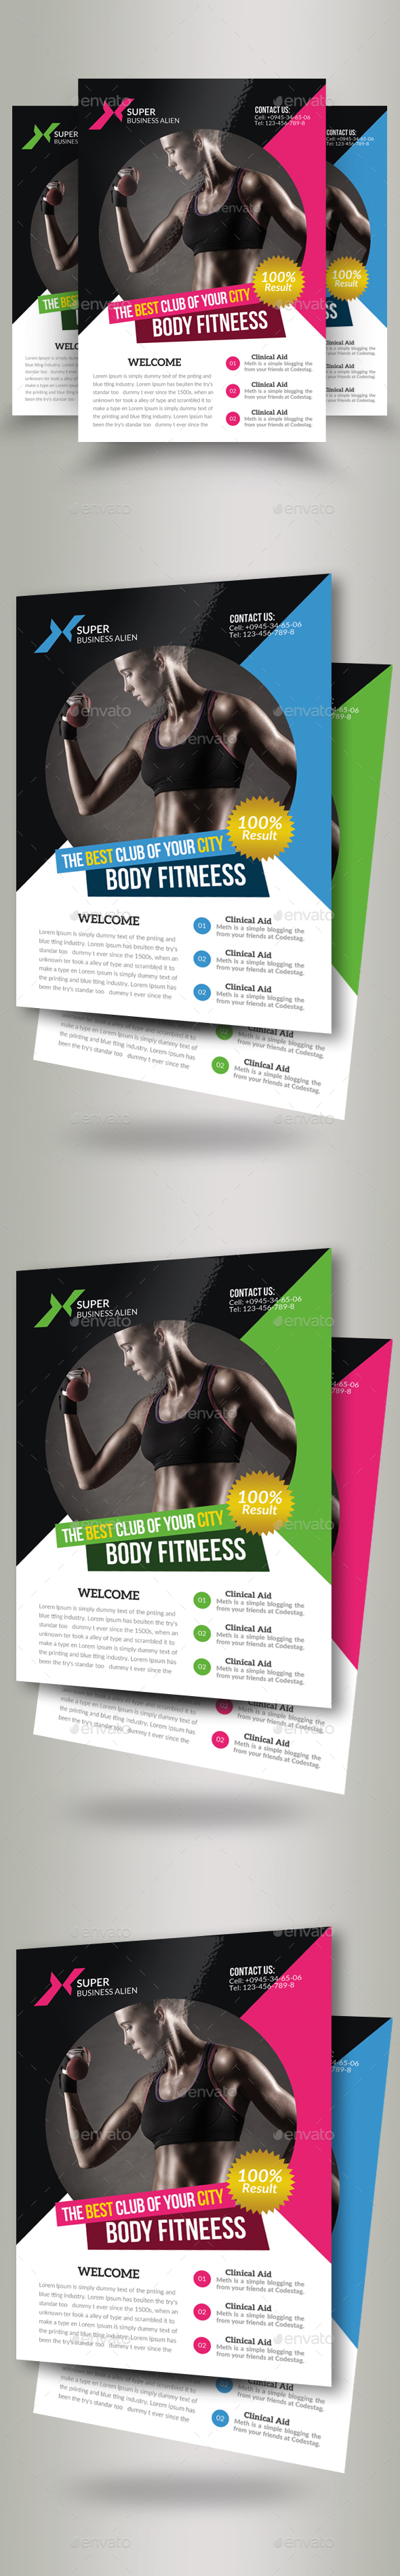 Body Fitness Club Flyer Template - Corporate Flyers